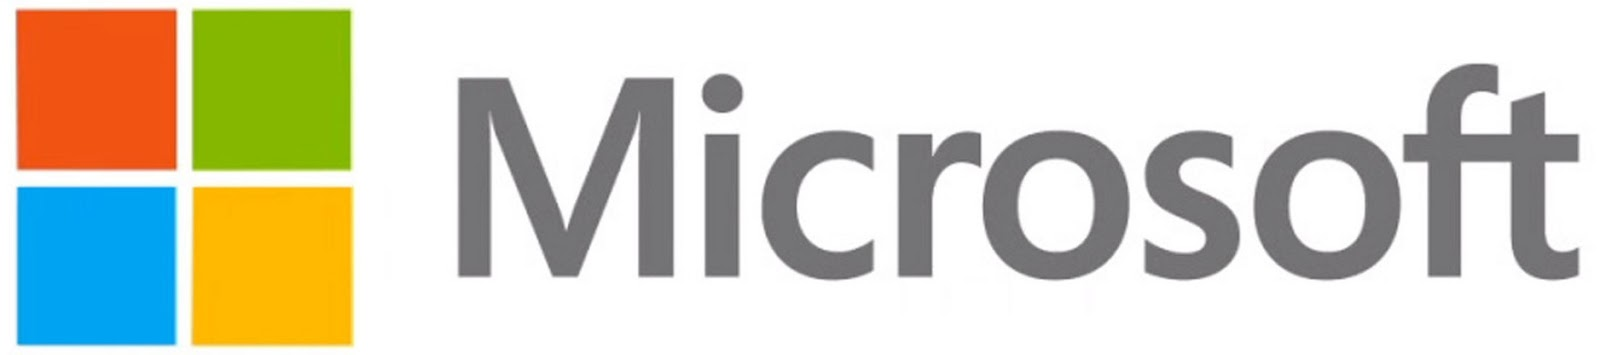 Microsoft Ends Windows XP and Office 2003 Support on 8th April 2014